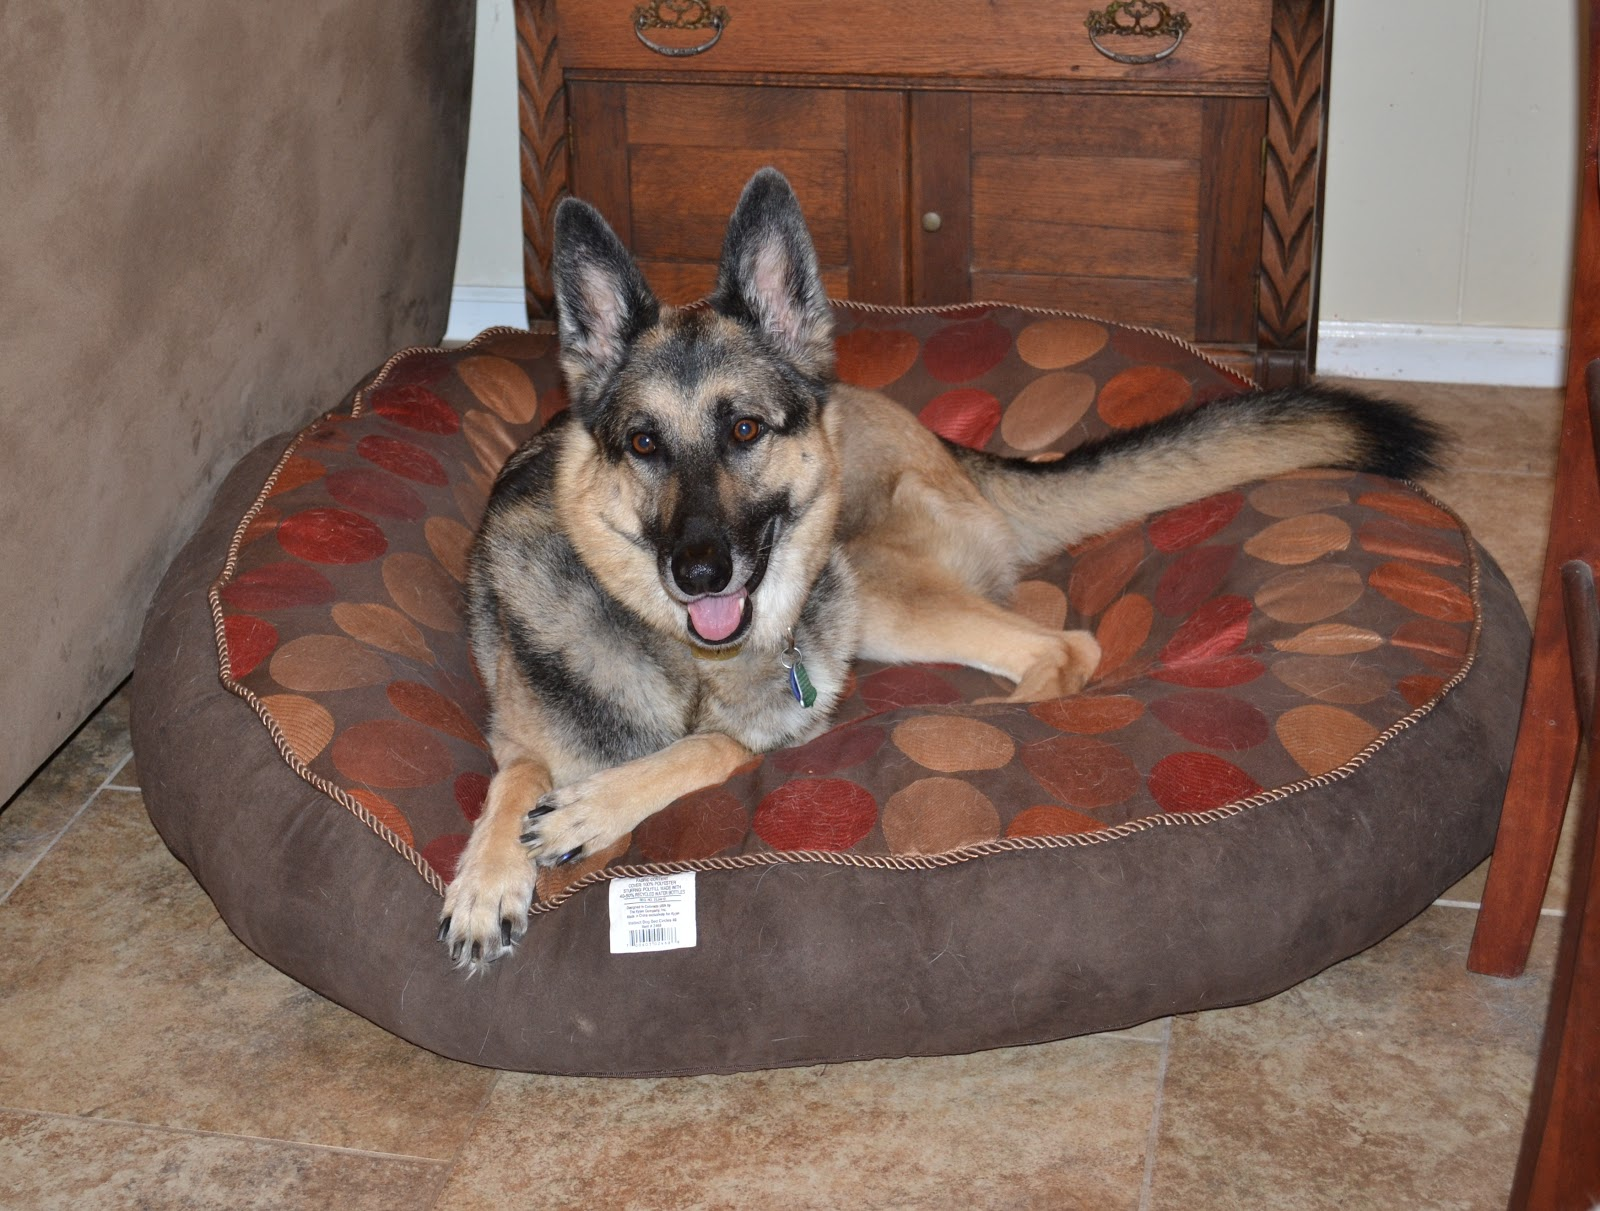 Turke the German Shepherd Dog